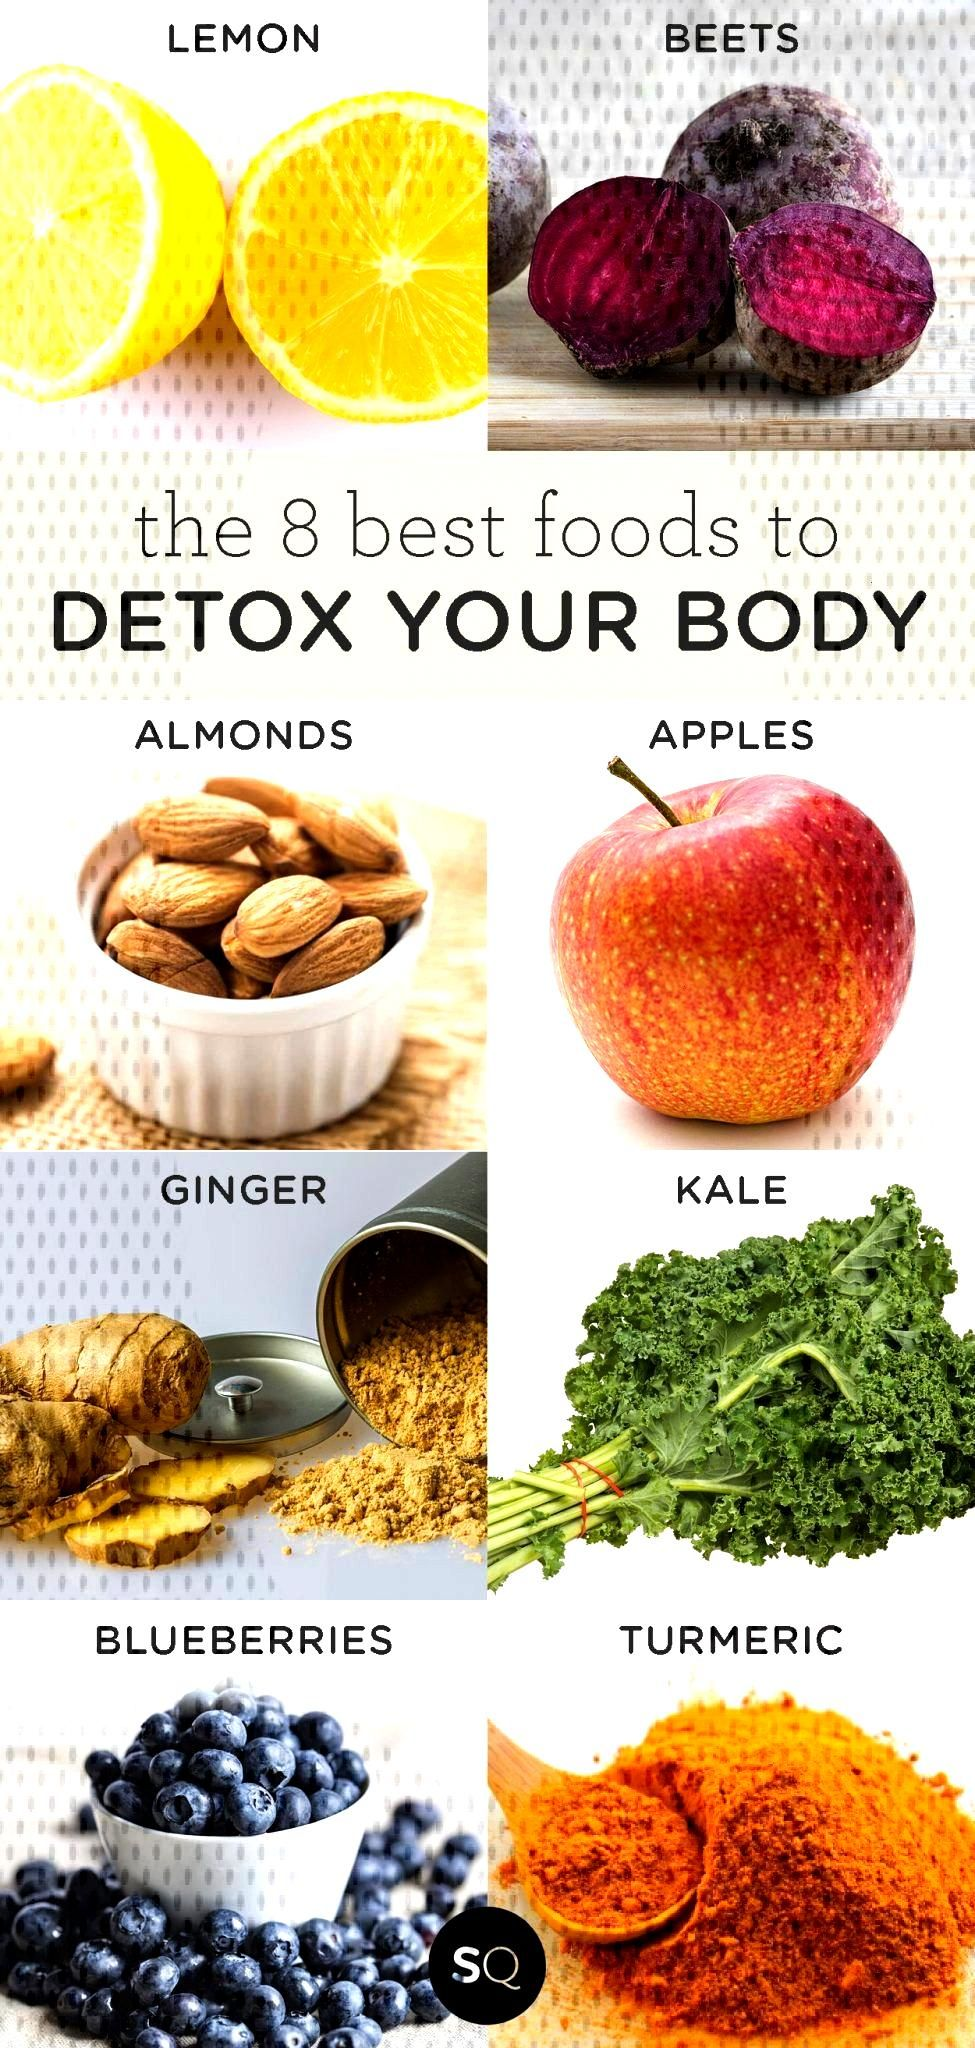 numerous functional support On fast options Of detox Diet Cleanse Sugar Cravings...